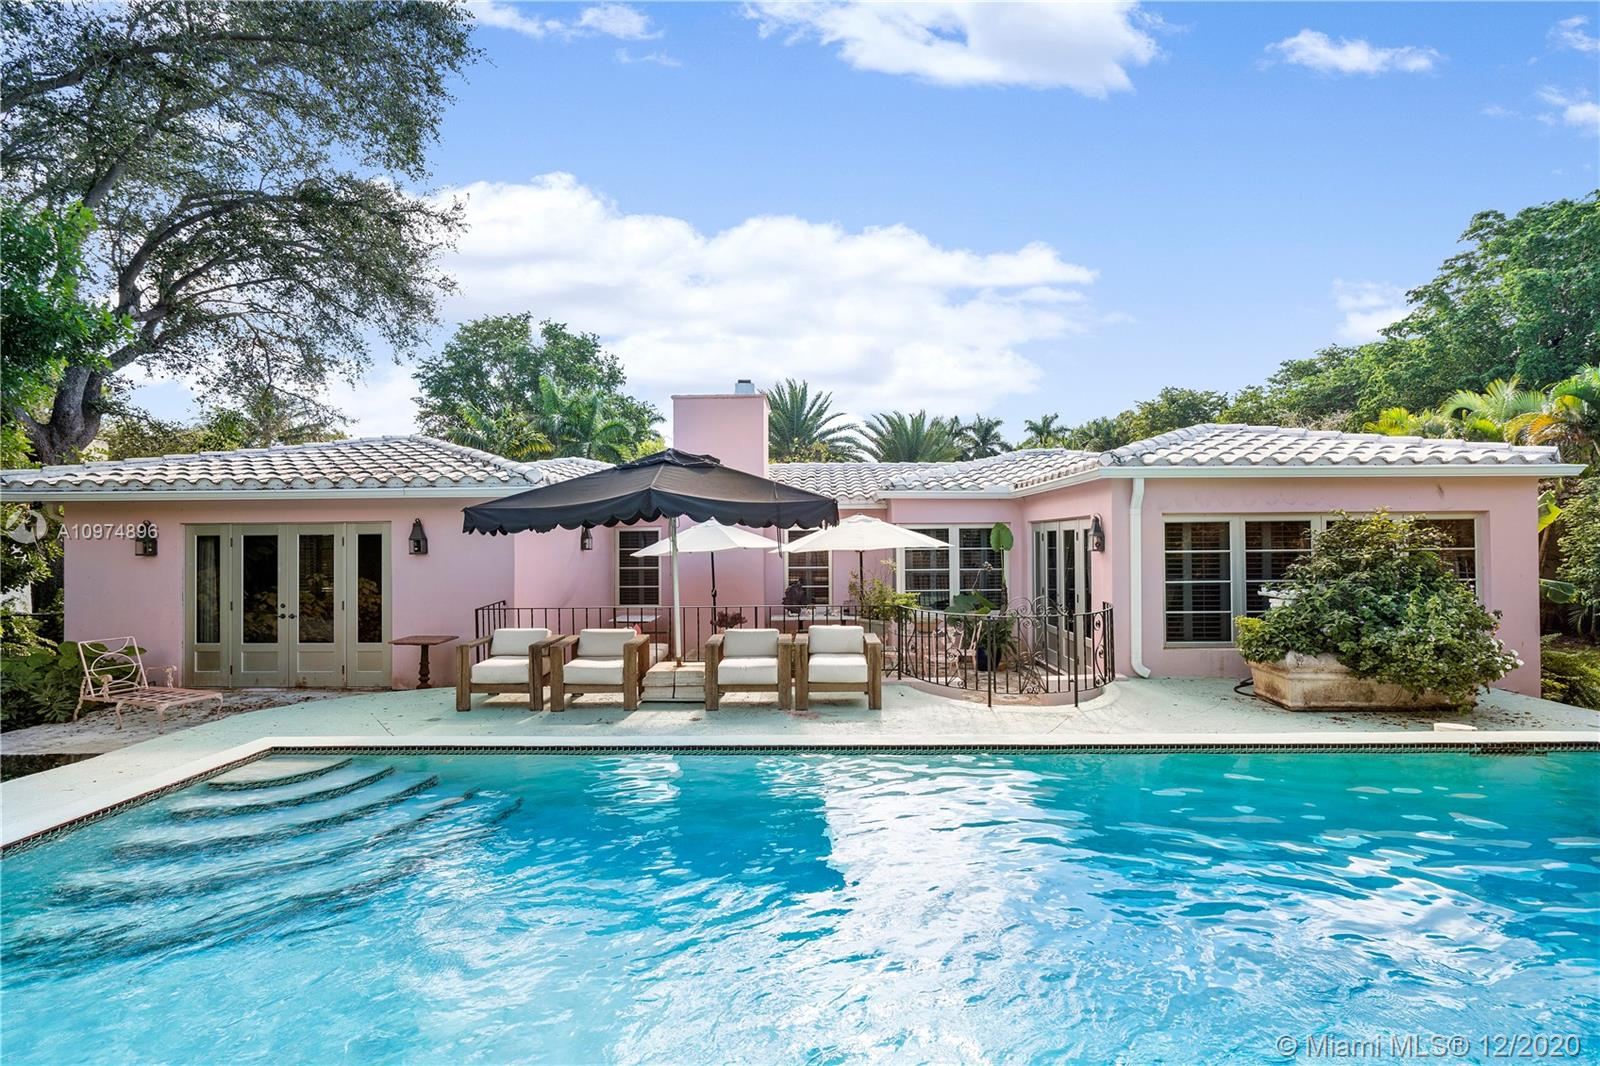 Details for 935 72nd Ter, Miami, FL 33138